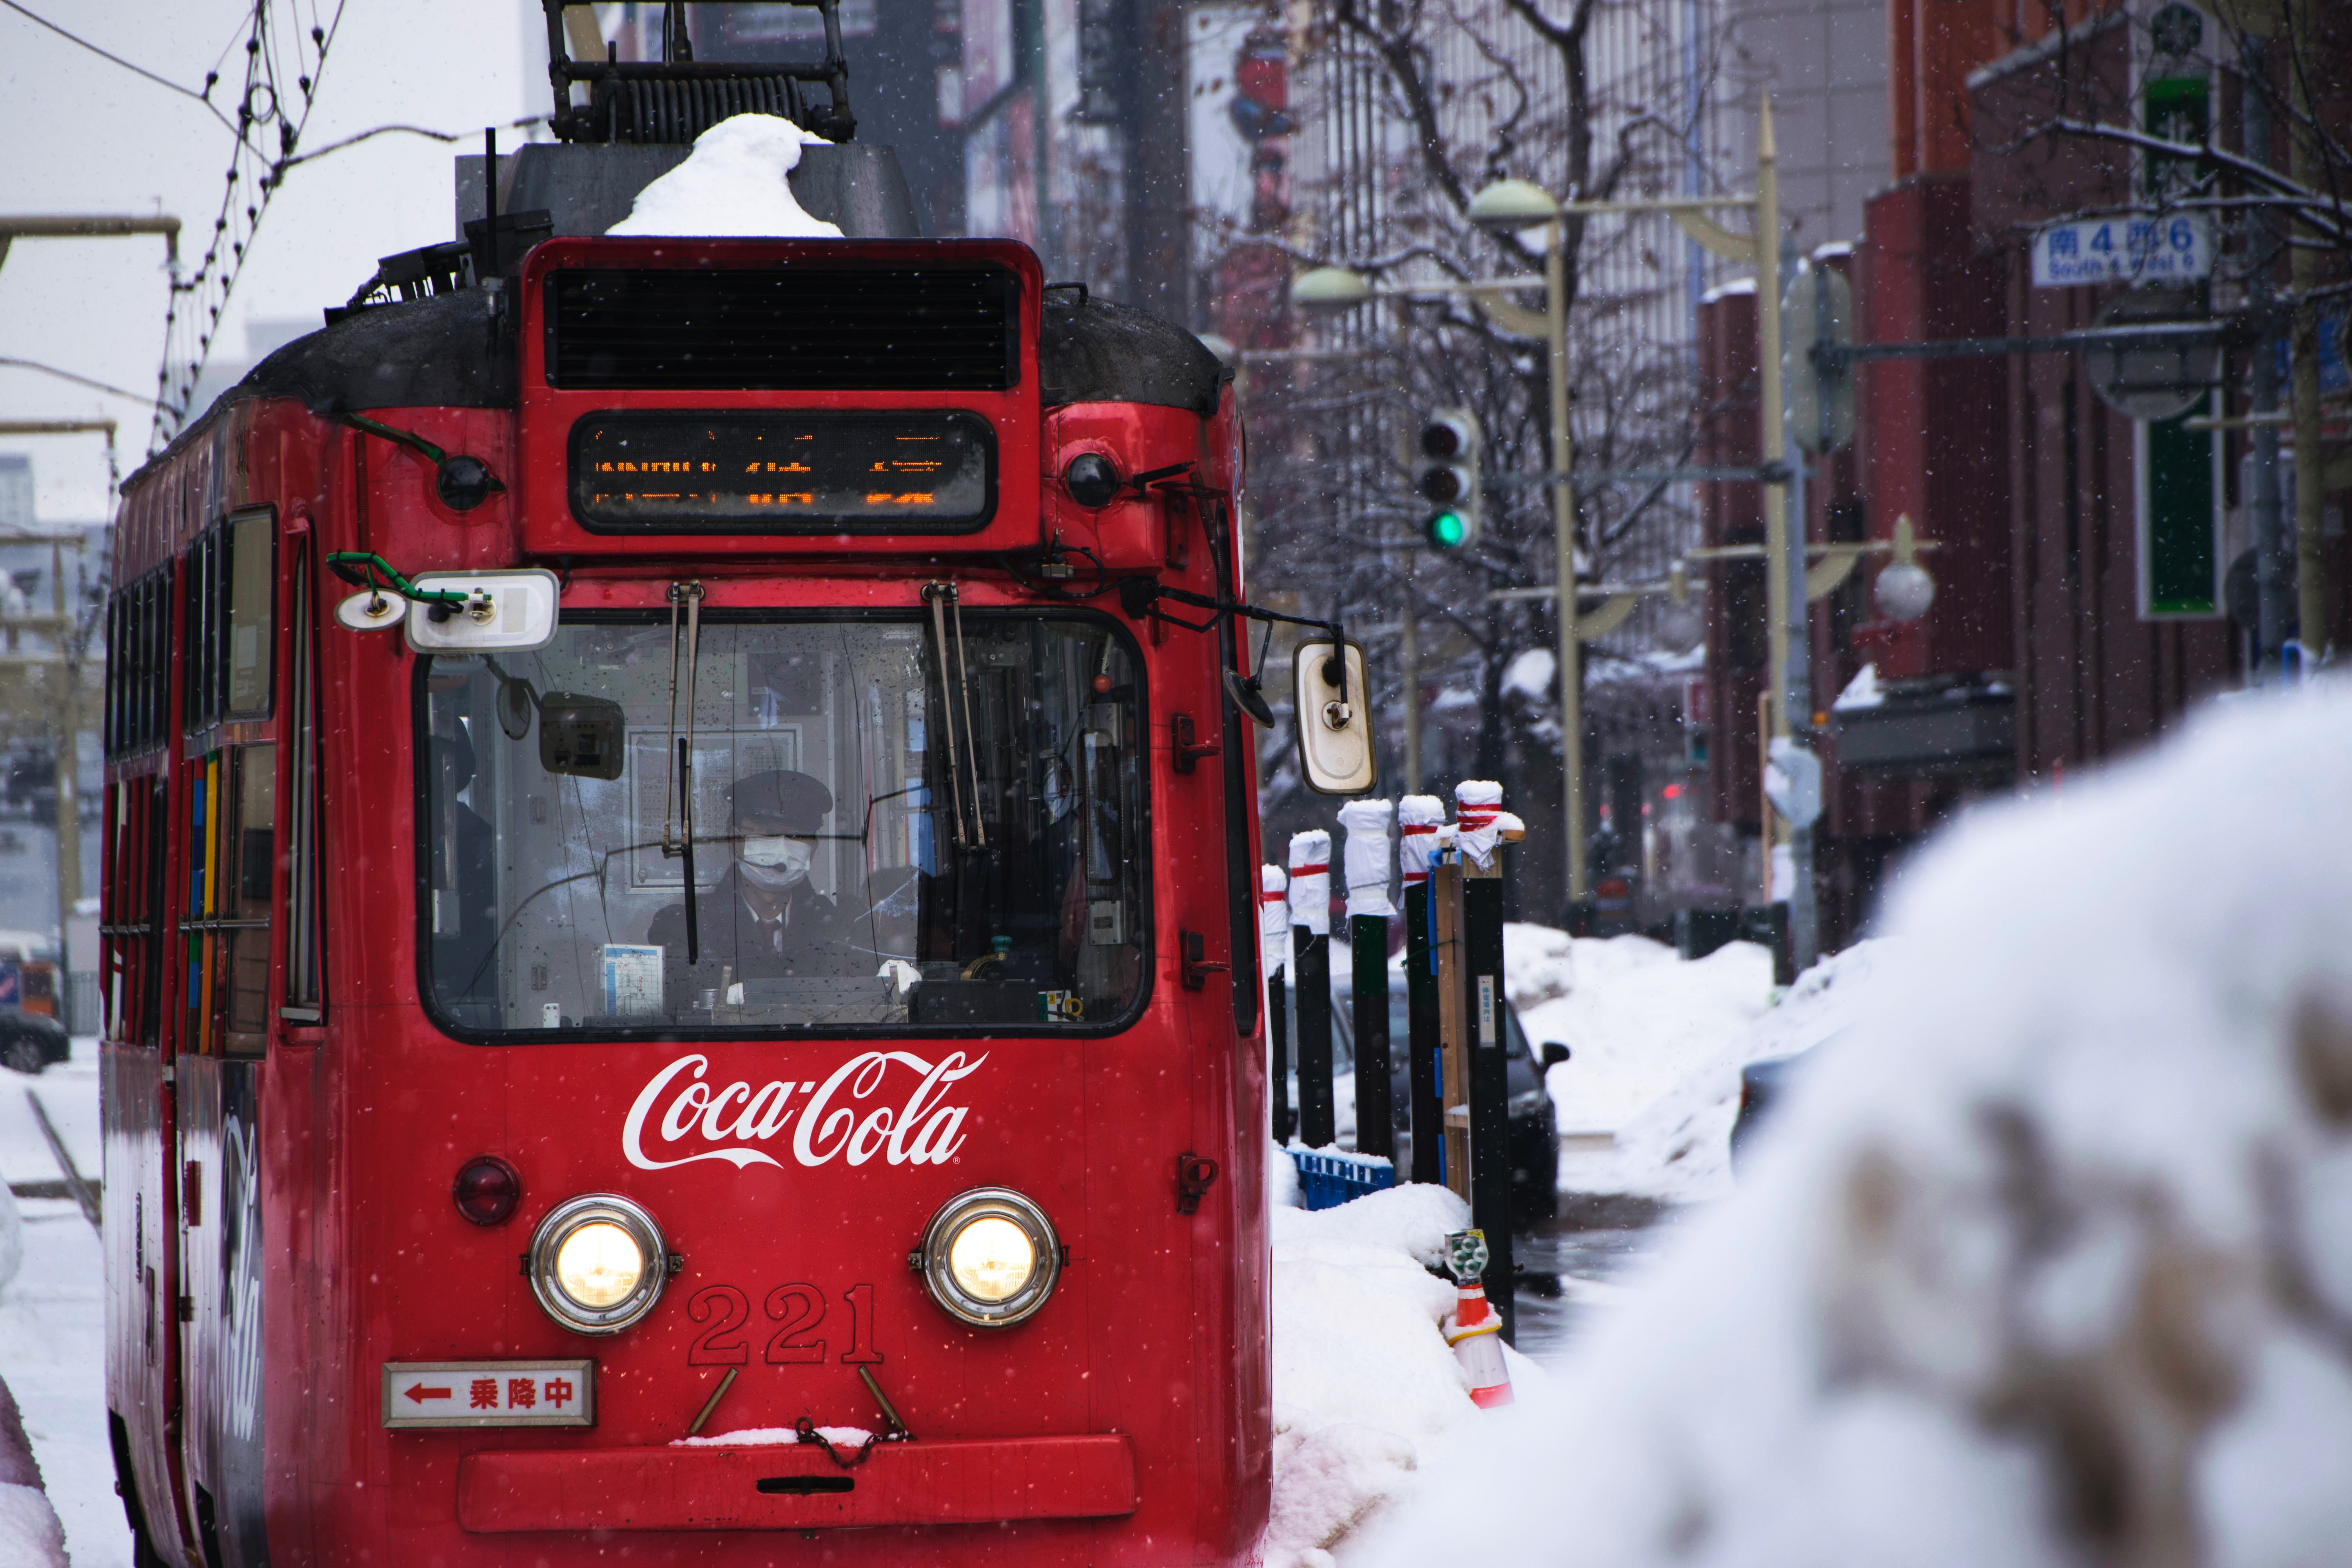 A trolleybus in Sapporo, Japan with Coca Cola branding on the front